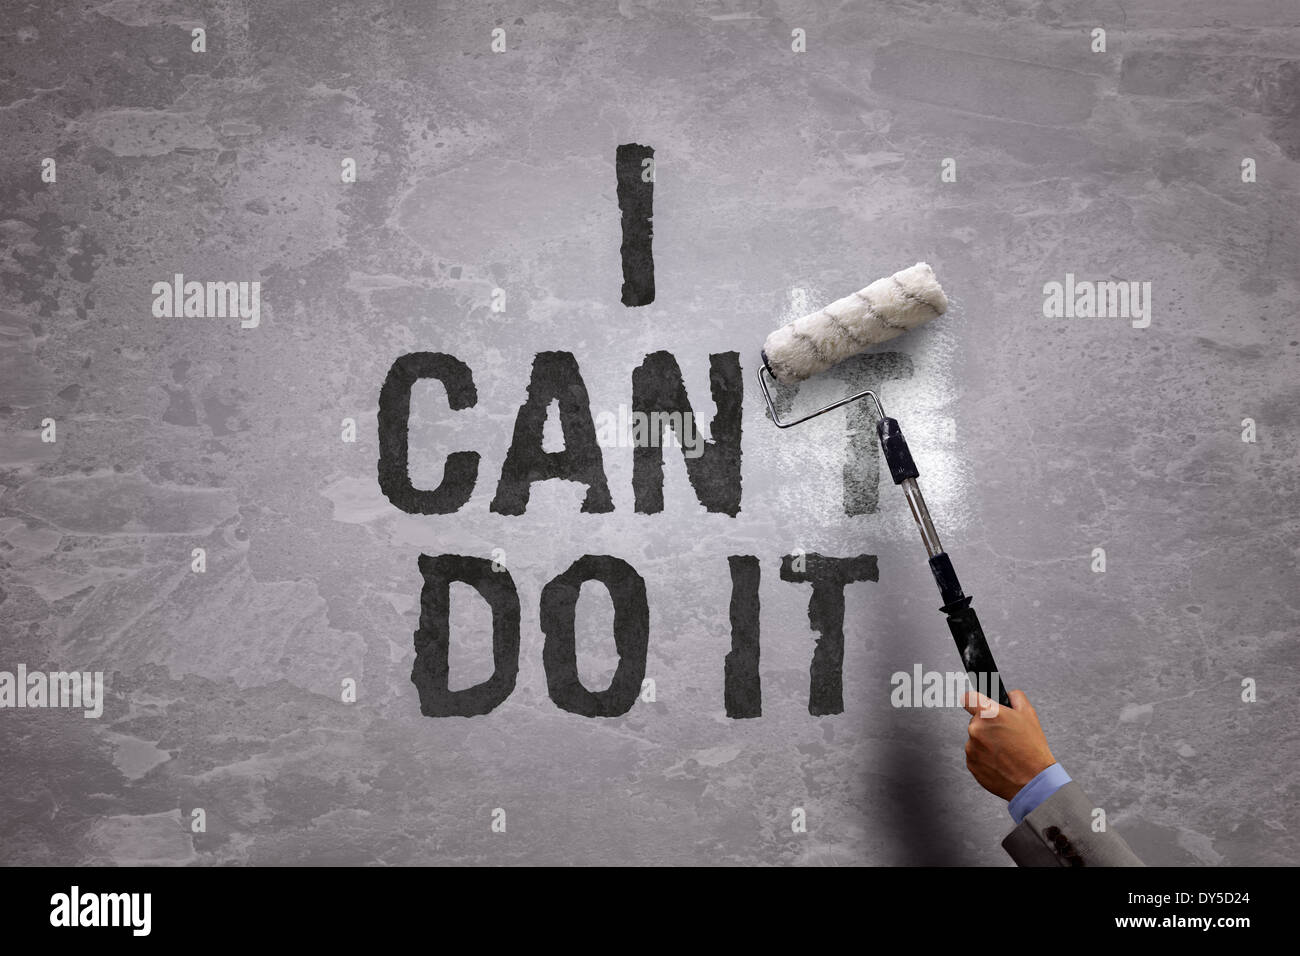 I can do it - Stock Image